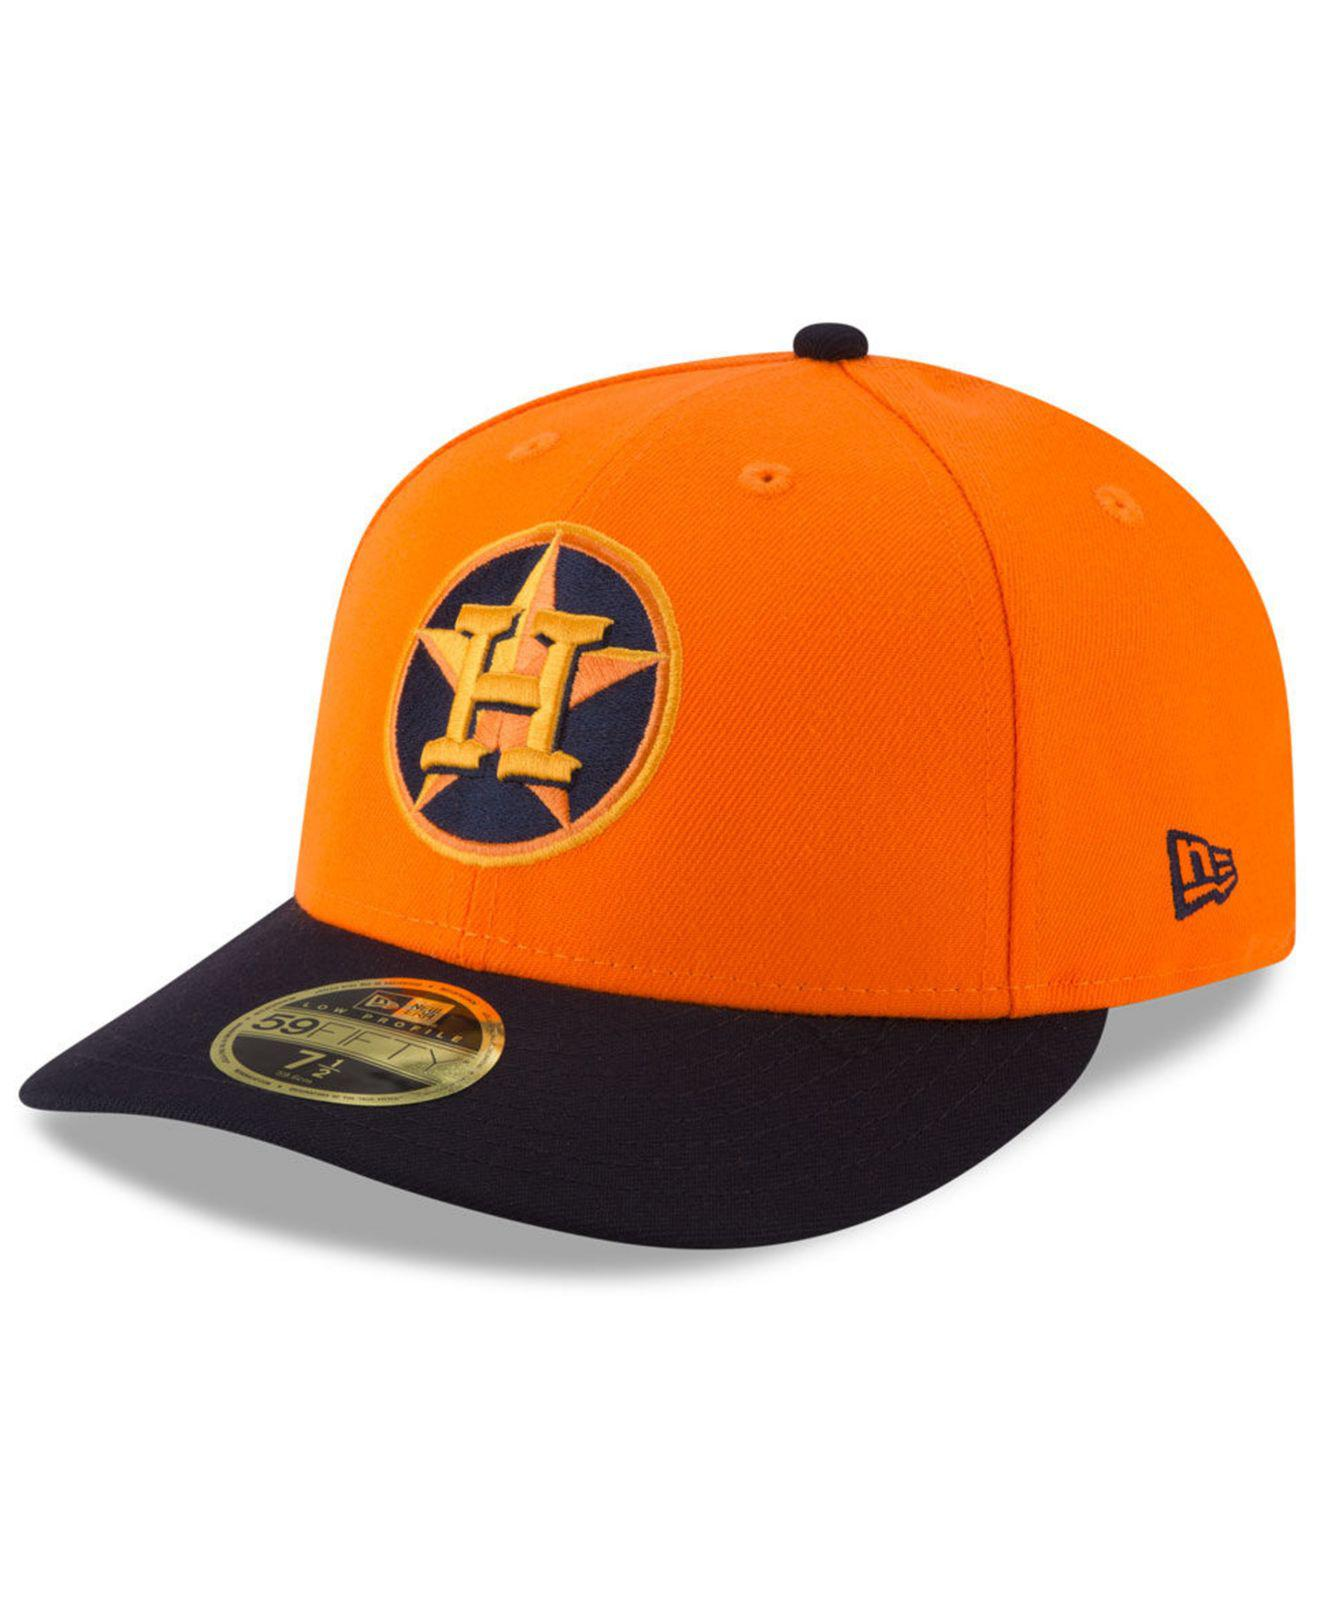 97daa6b0767 KTZ - Orange Houston Astros Players Weekend Low Profile 59fifty Fitted Cap  for Men - Lyst. View fullscreen